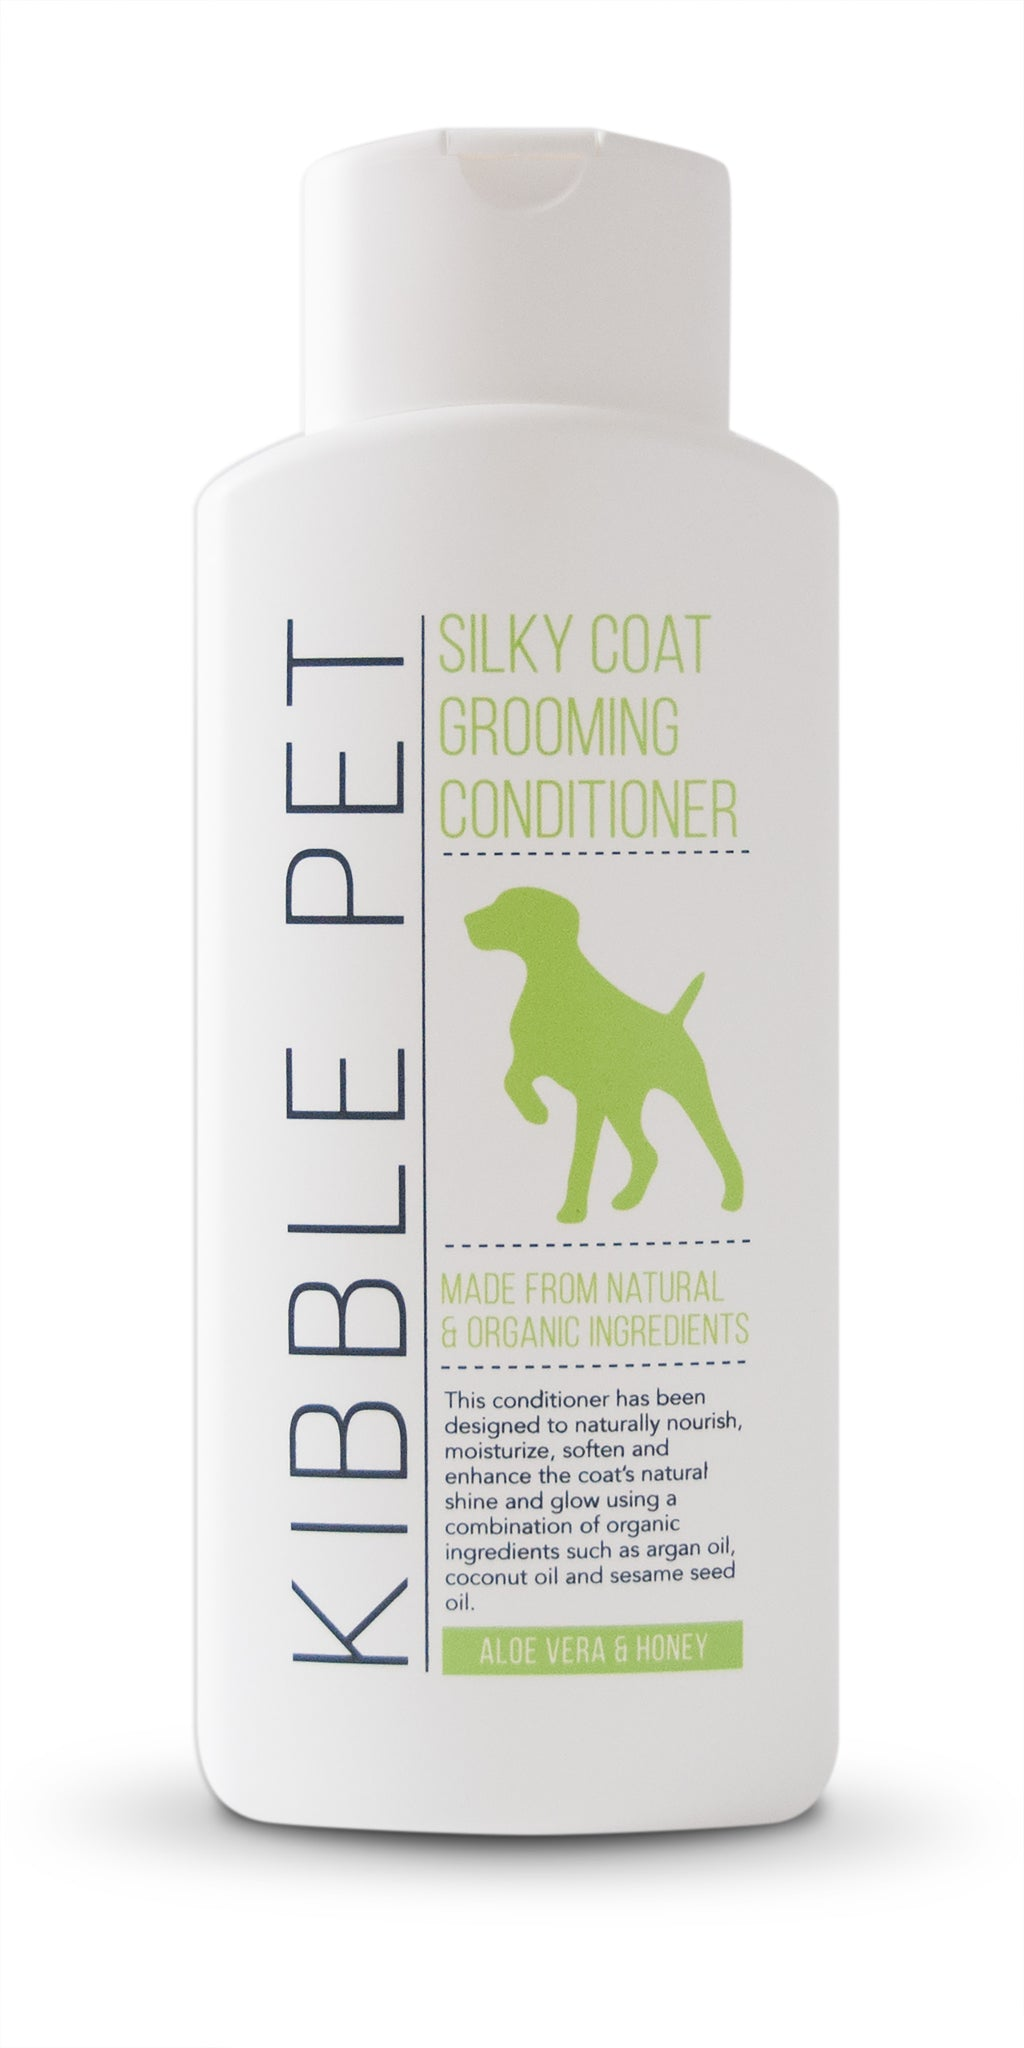 Aloe Vera & Honey - Dog Conditioner - Silky Coat